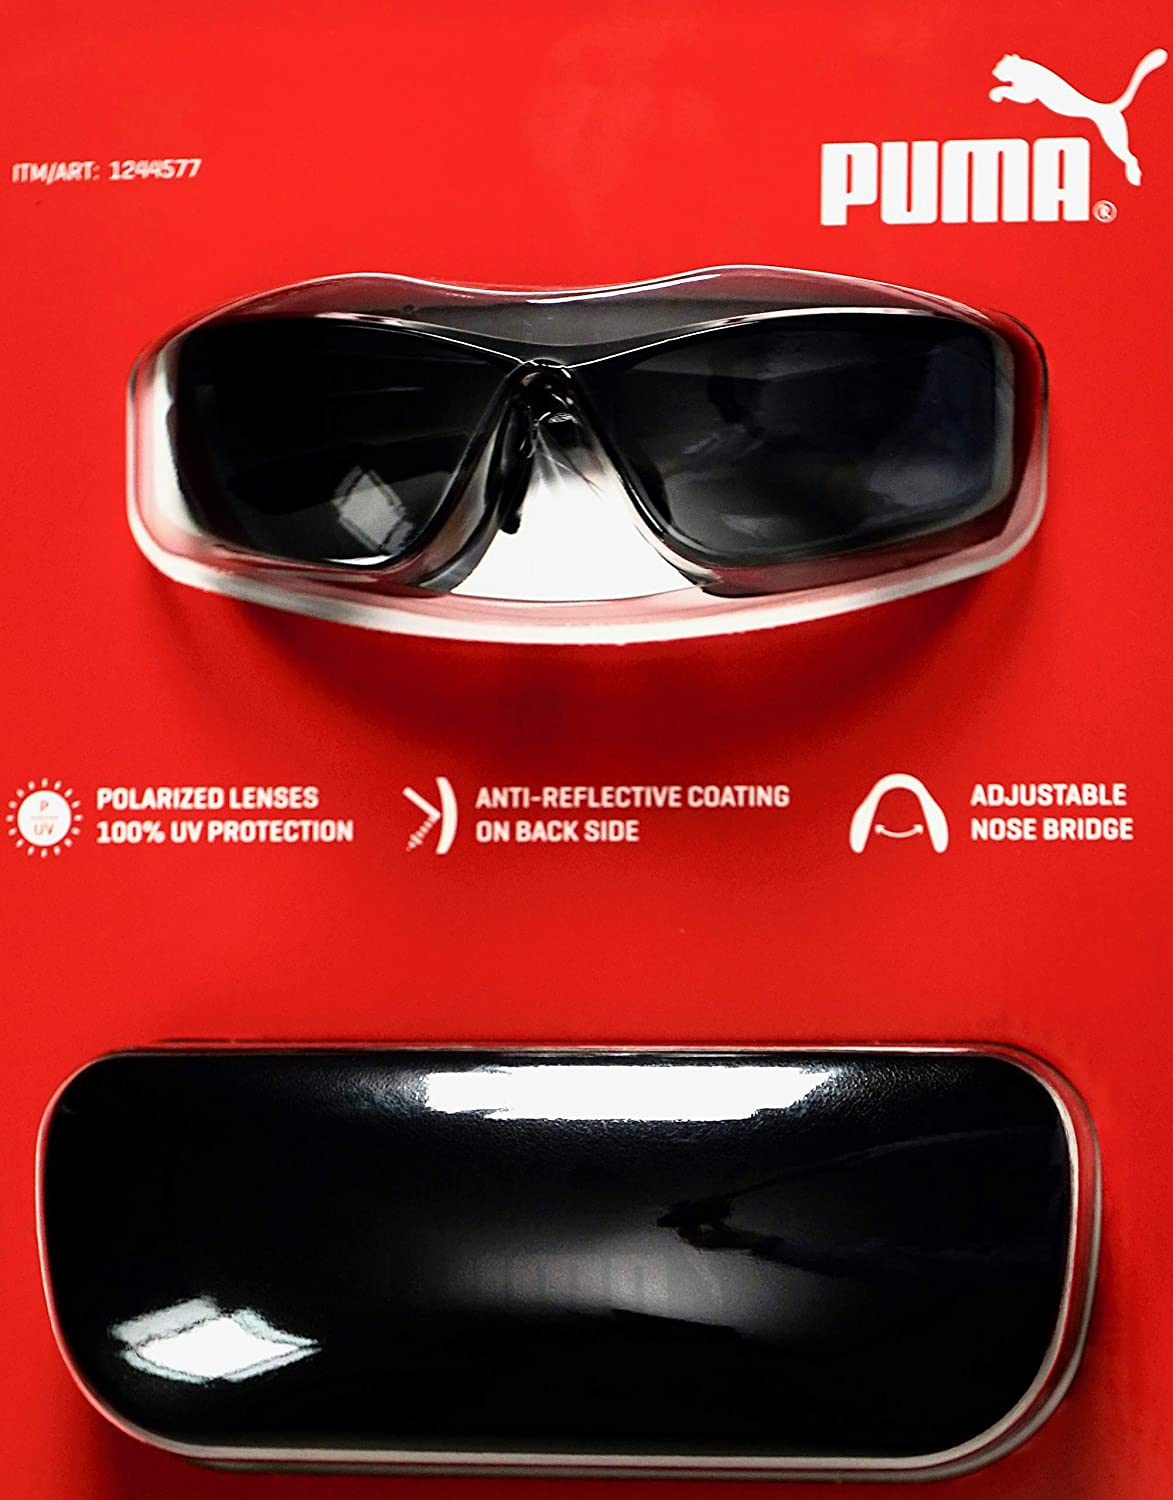 976e218f3e1 Amazon.com  PUMA Men s Polarized Sunglasses Anti-Reflective with Case   Clothing